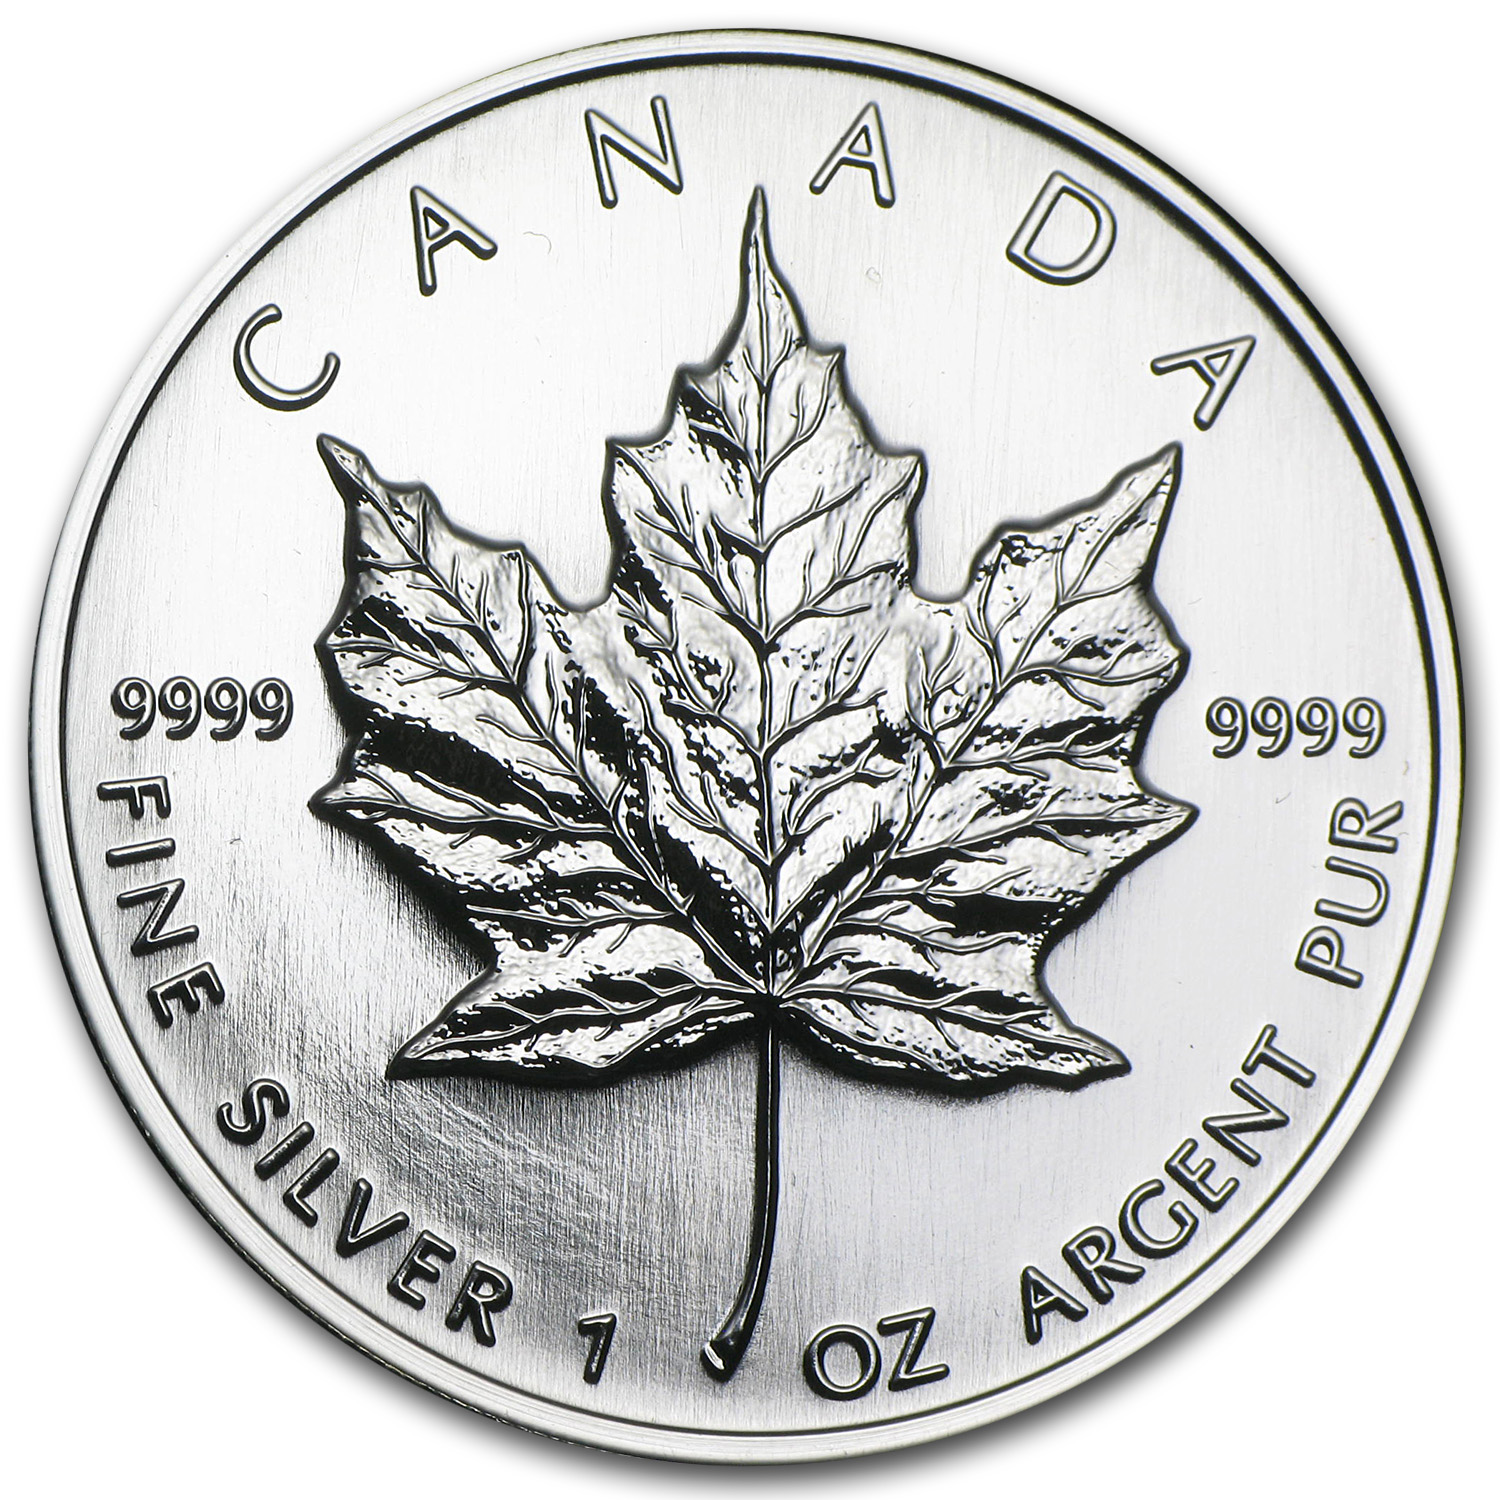 1998 1 oz Silver Canadian Maple Leaf (Brilliant Uncirculated)